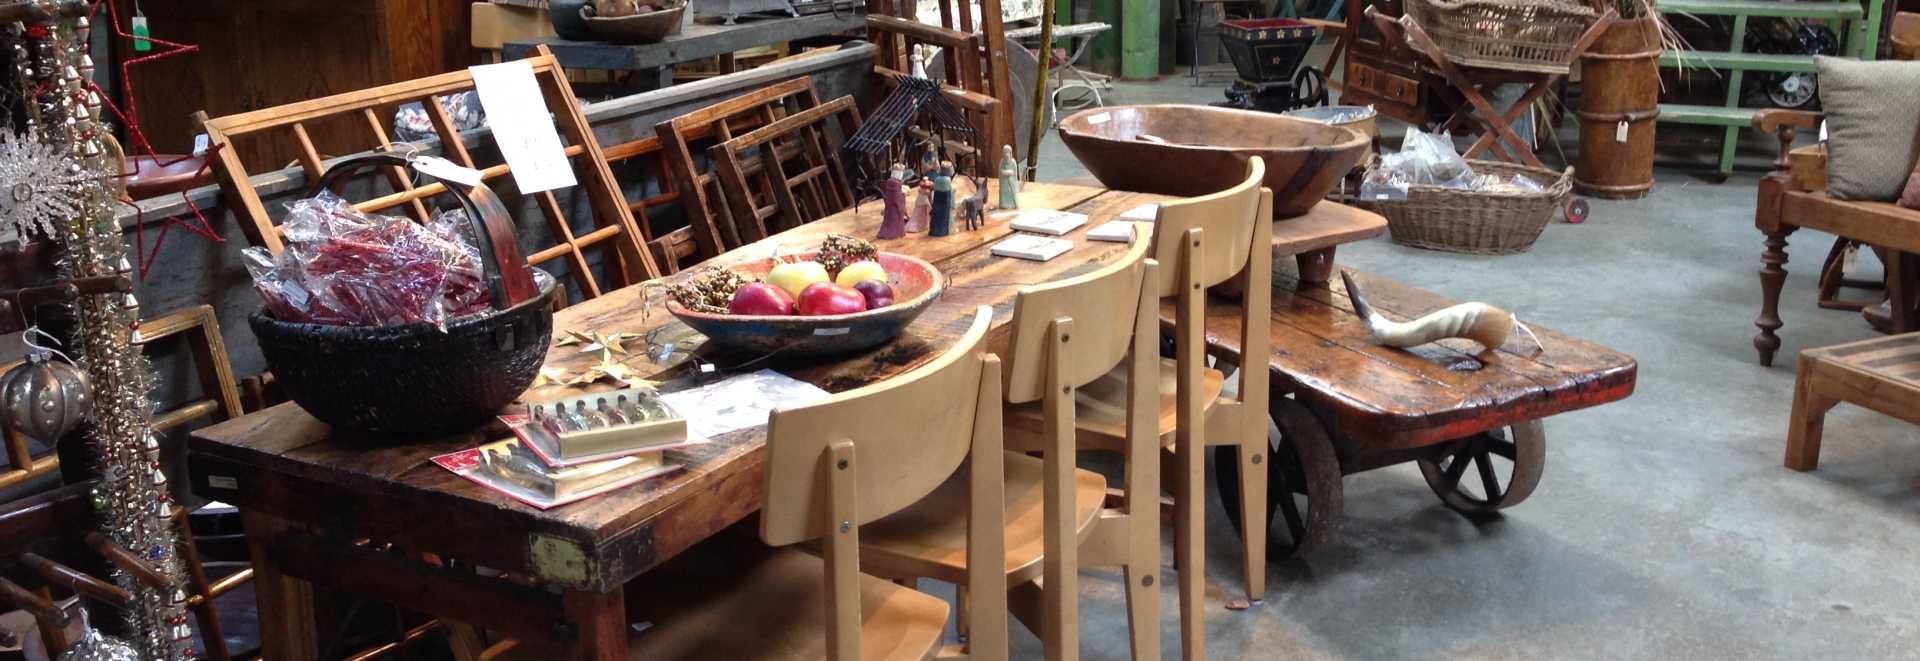 A Table Chairs And Other Home Decor Is Presented In This Warehouse Style Antique